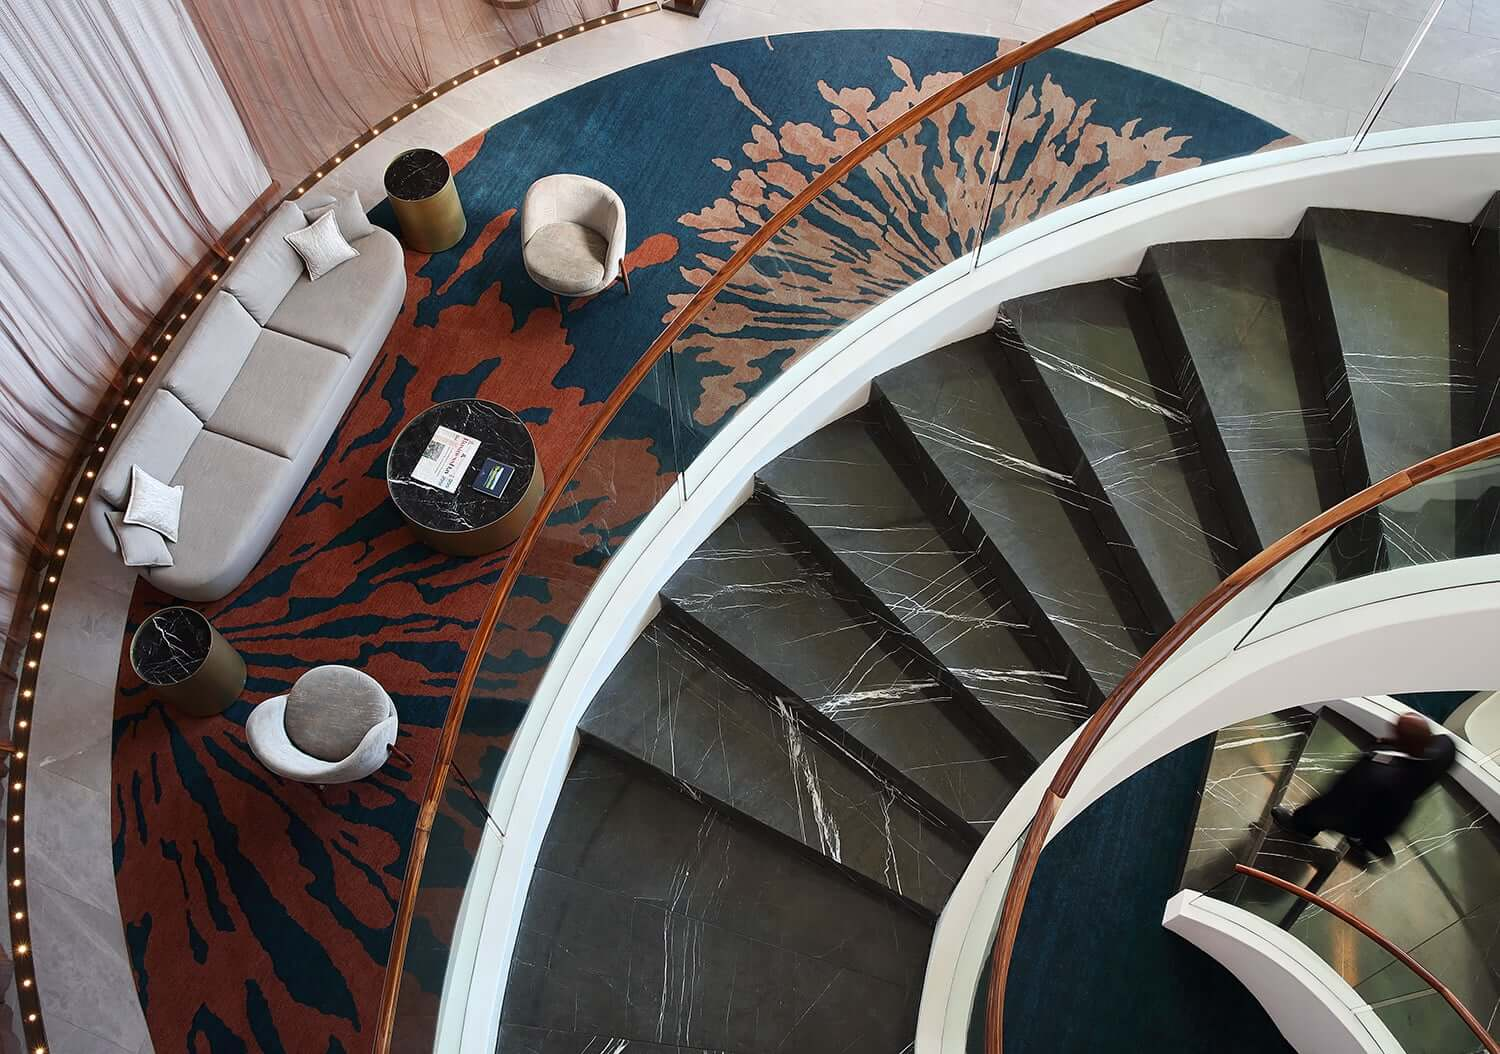 Sweeping spiral staircase in the lobby of the Houghton Hotel and Spa. Photo by Elsa Young.